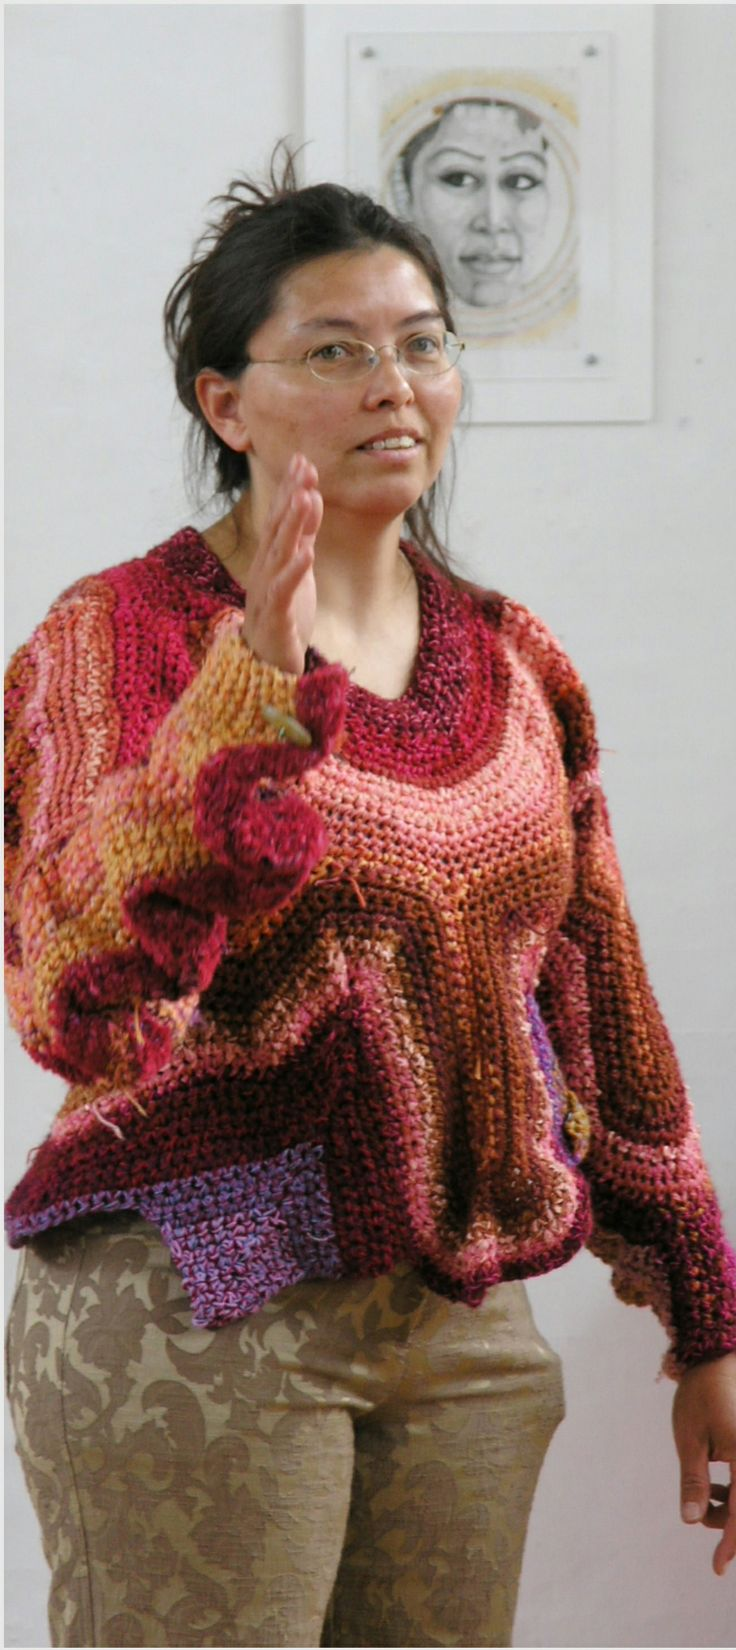 Crocheted freeform sweater by Naja Abelsen. (and one of my drawings in the background)